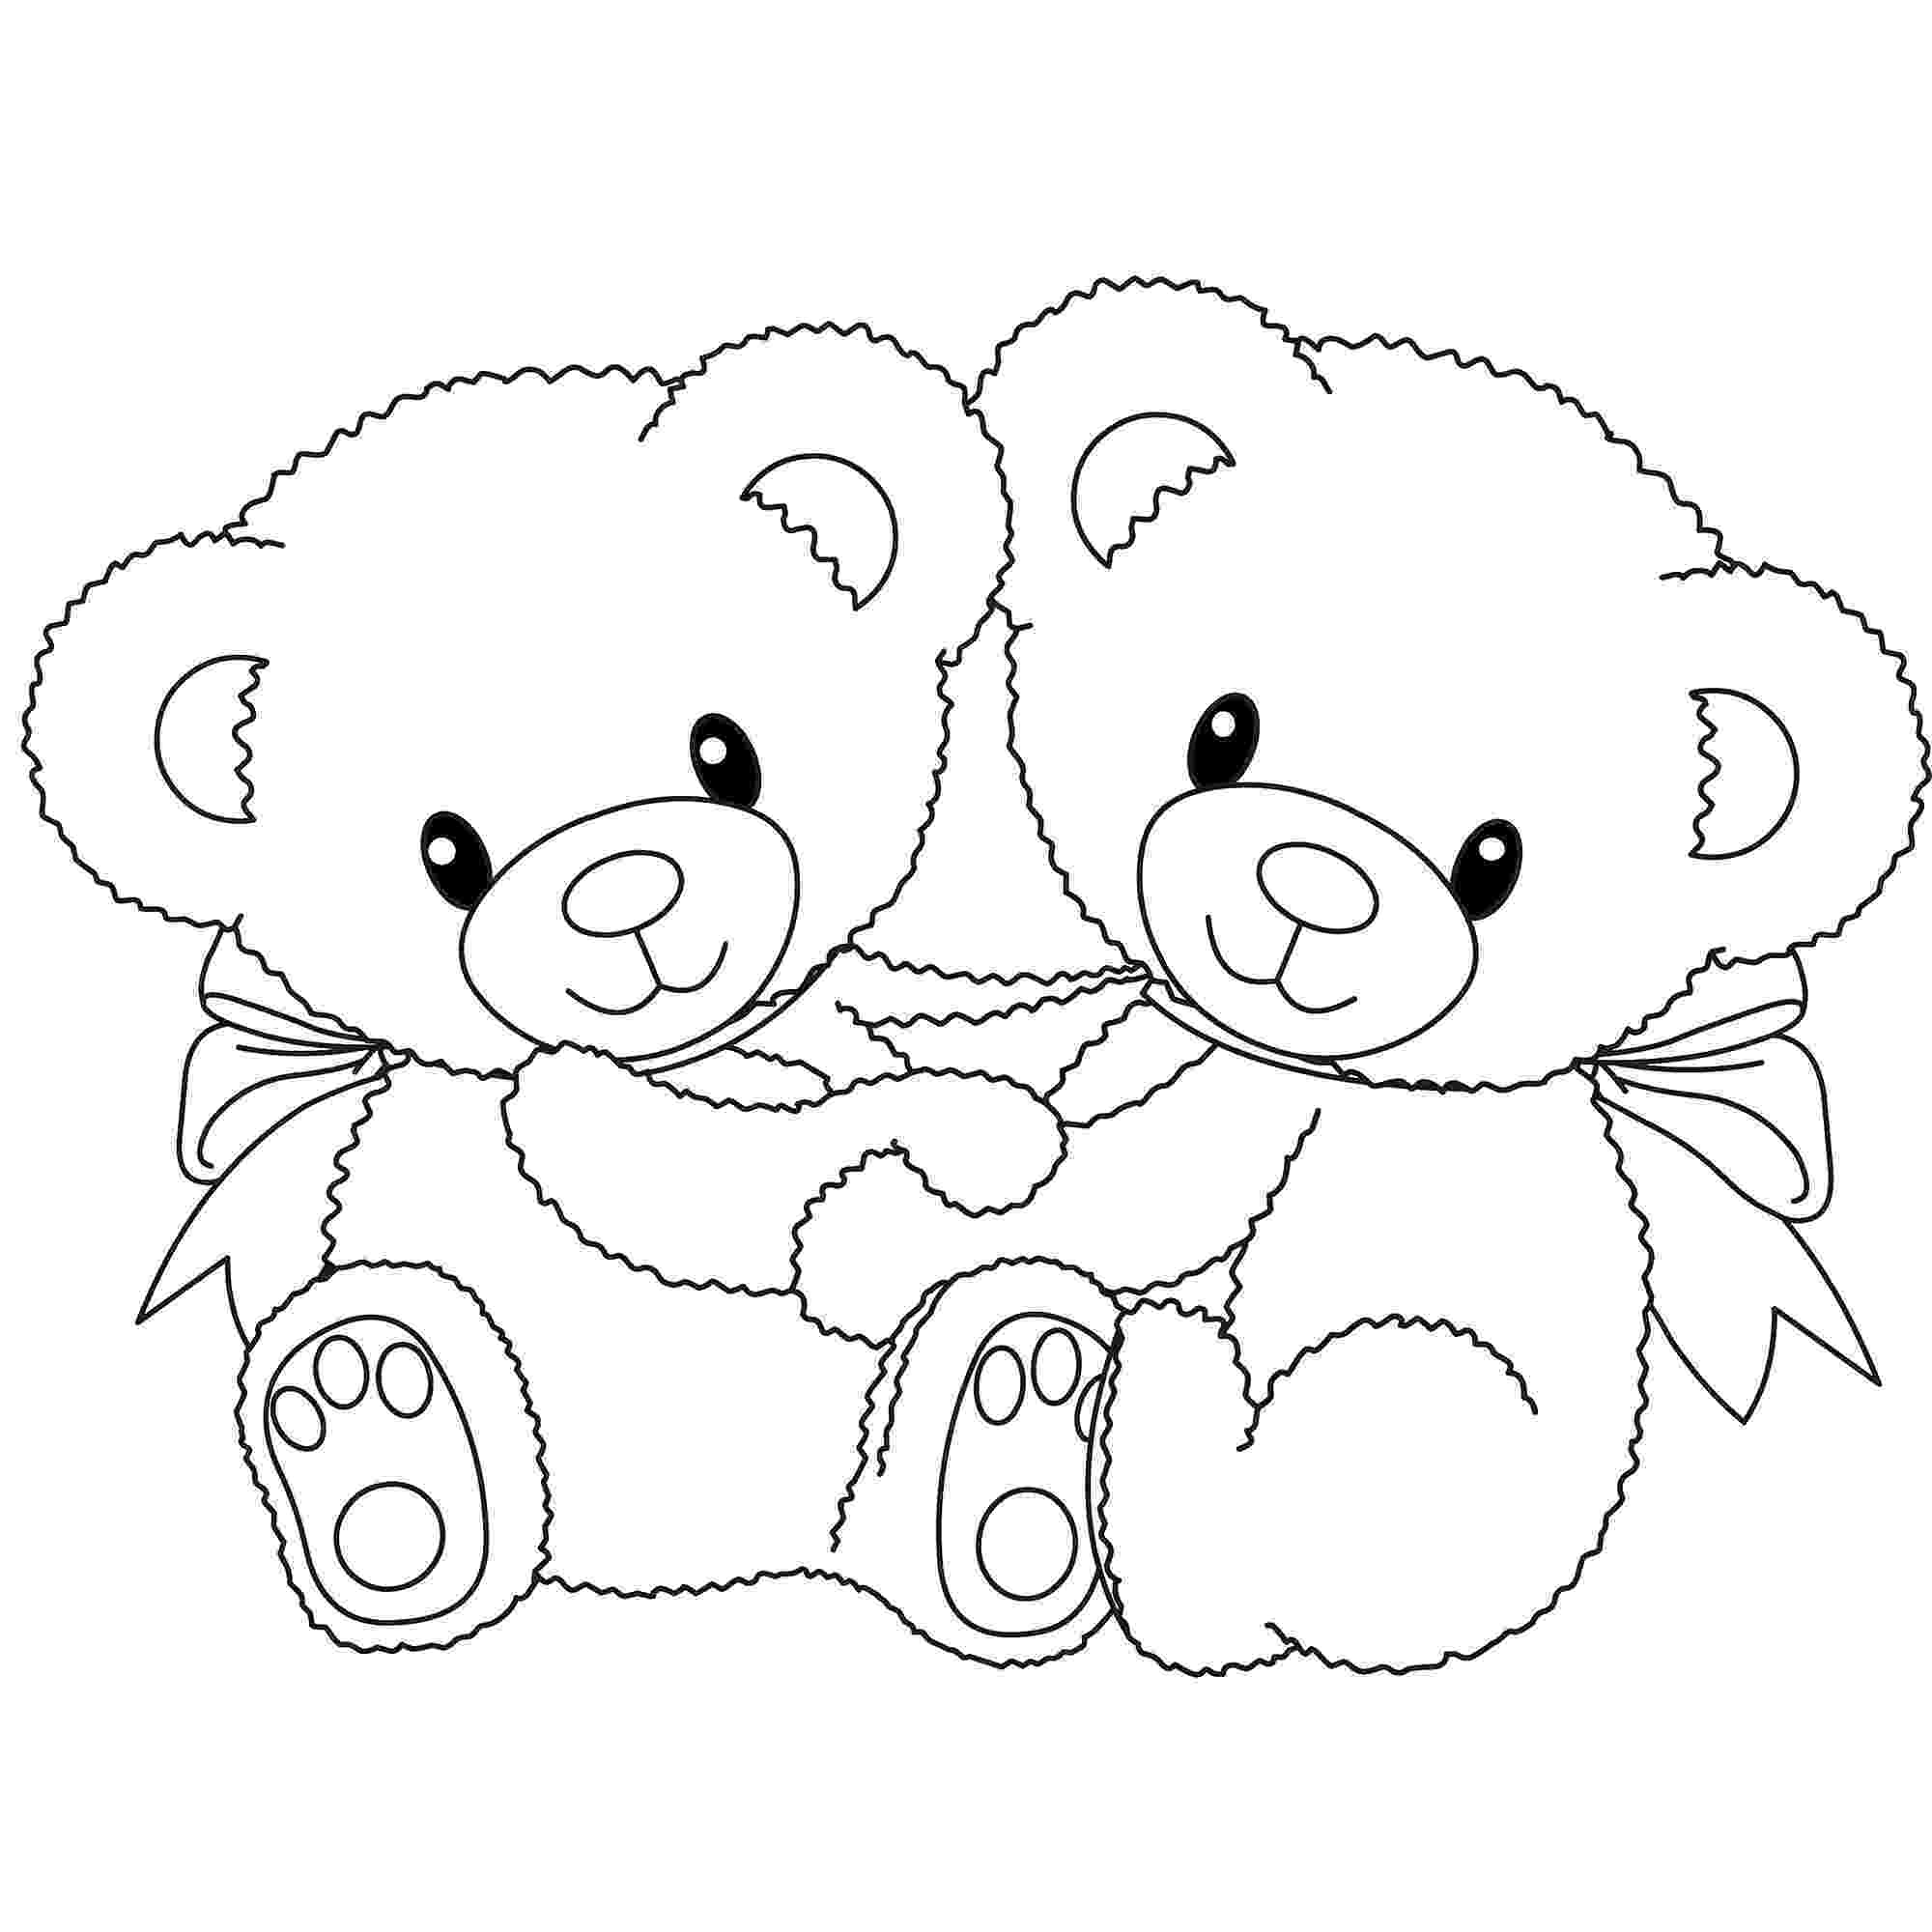 bear with heart coloring pages of teddy bears with hearts for preschoolers bear with heart